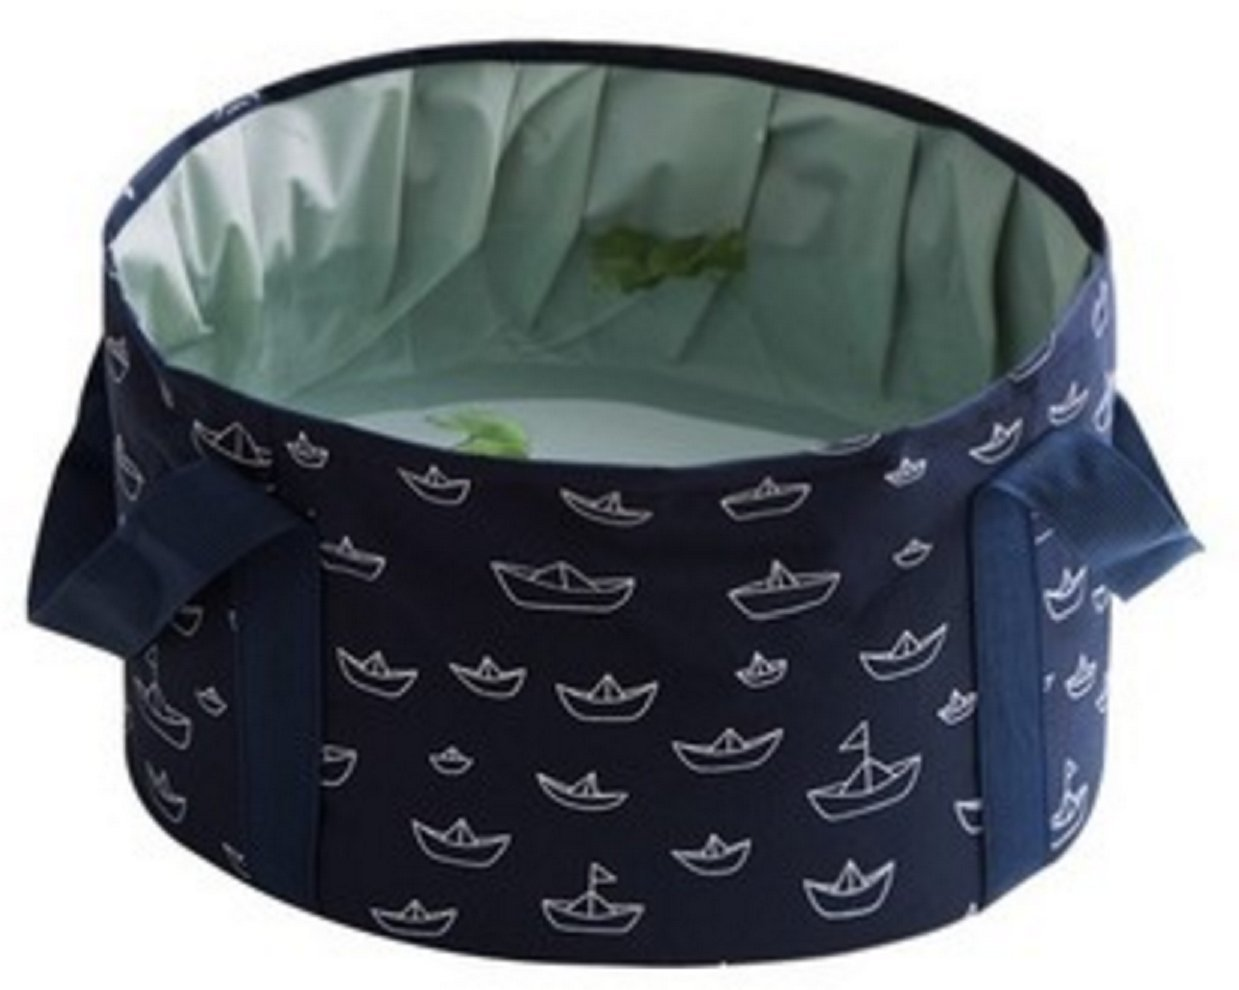 16L Premium Compact Portable Multi-functional Durable Leak-Proof Wash Basin Collapsible Bucket for Camping (Dark blue)